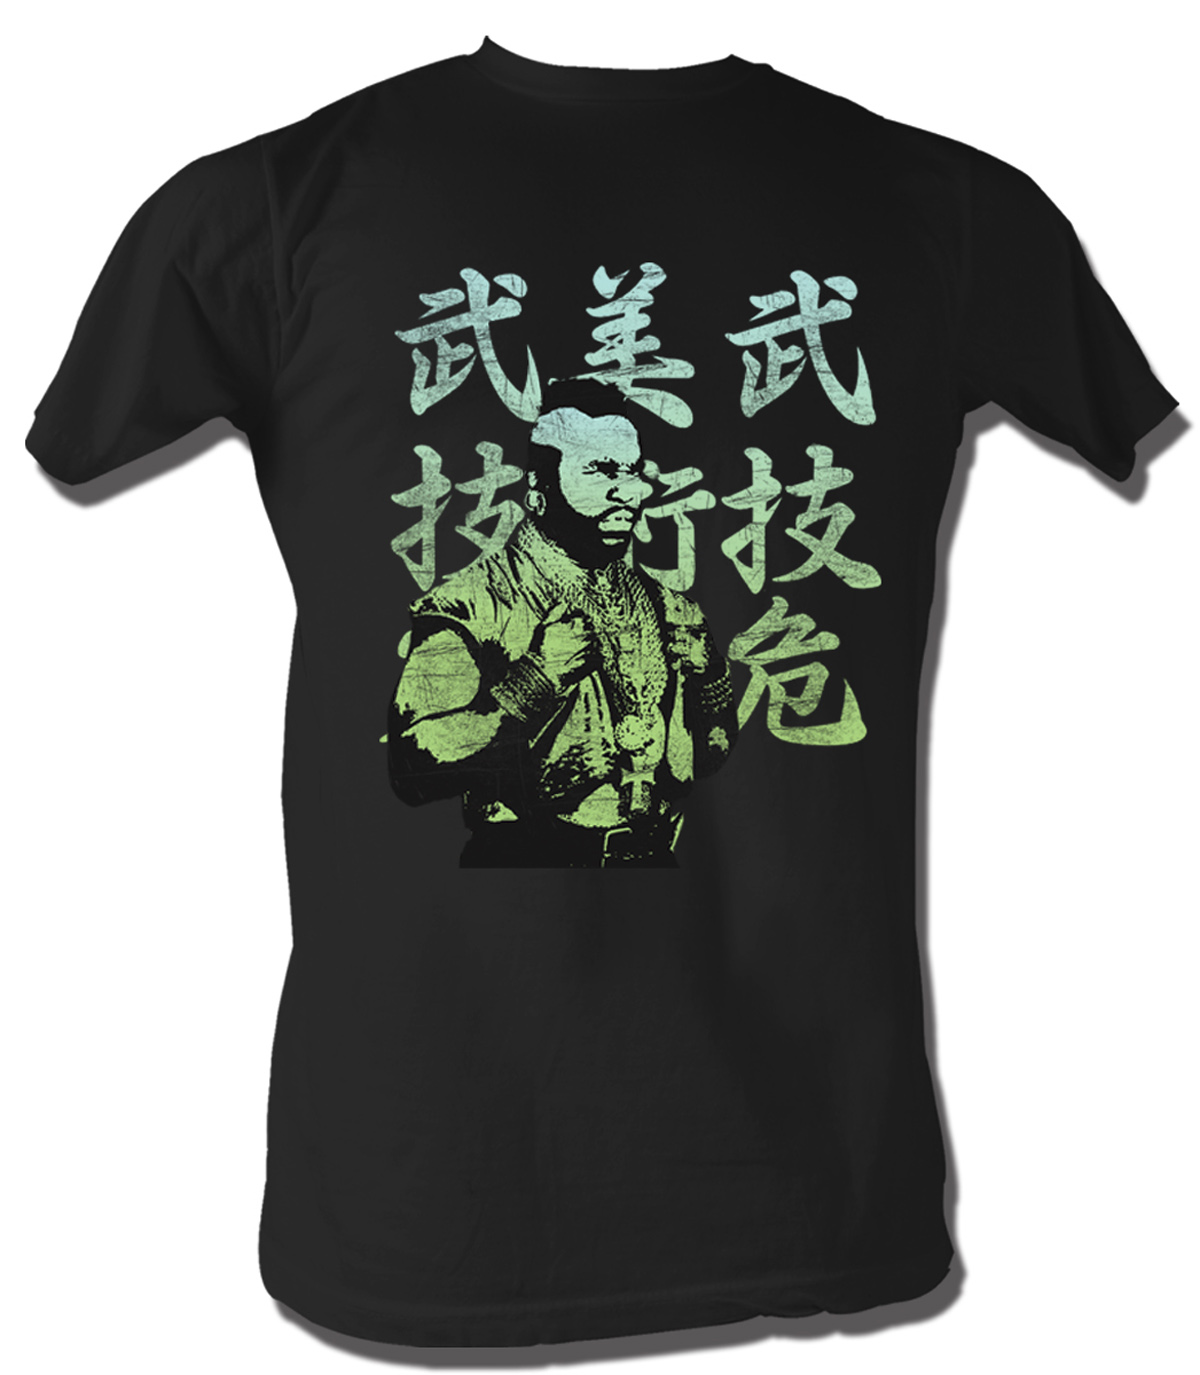 mr t t shirt japanese a team adult black tee shirt mr t shirts. Black Bedroom Furniture Sets. Home Design Ideas